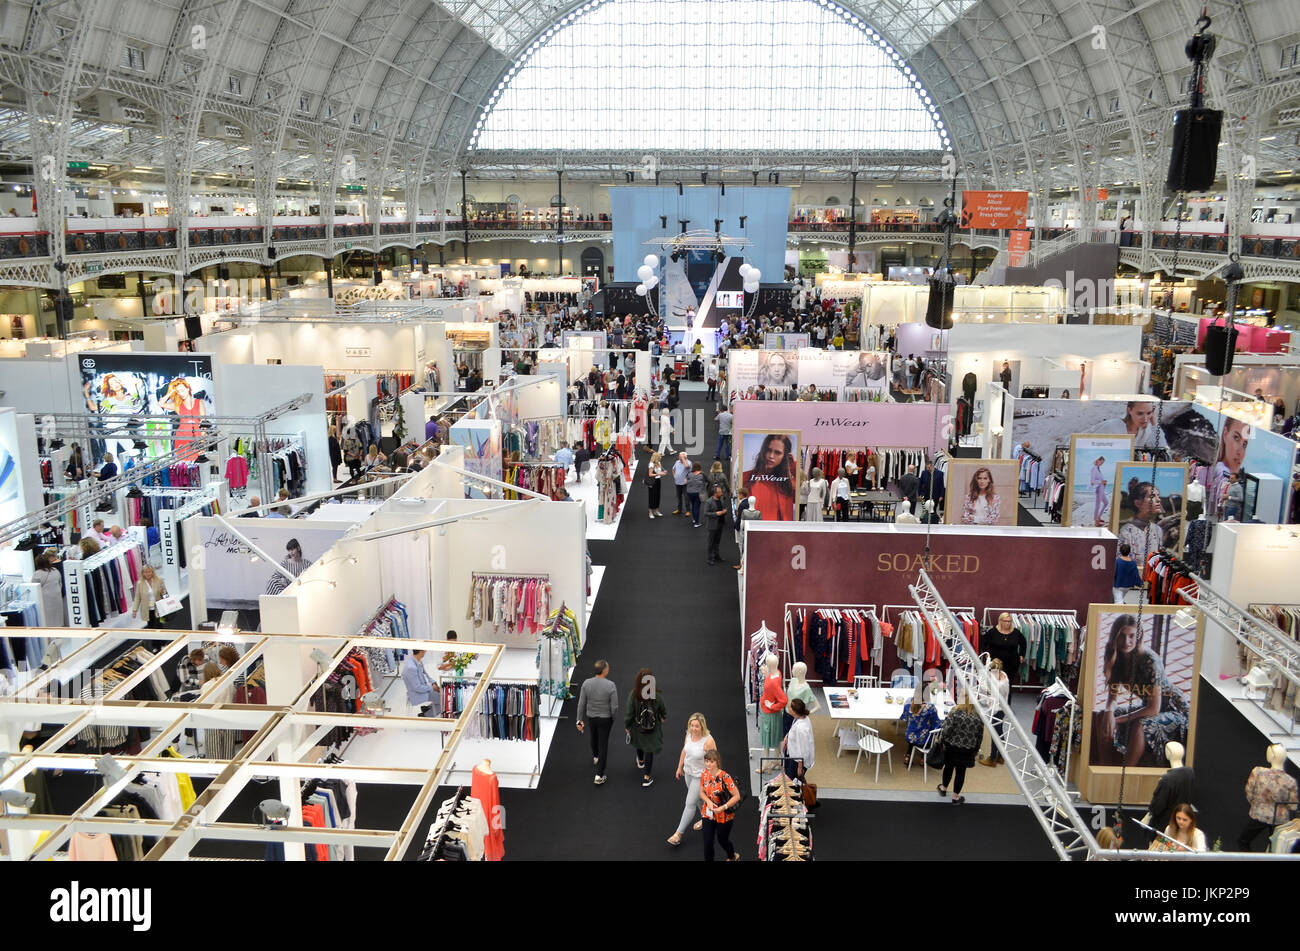 Trade Stands Olympia : Trade stands at pure london olympia london uk. pure london the